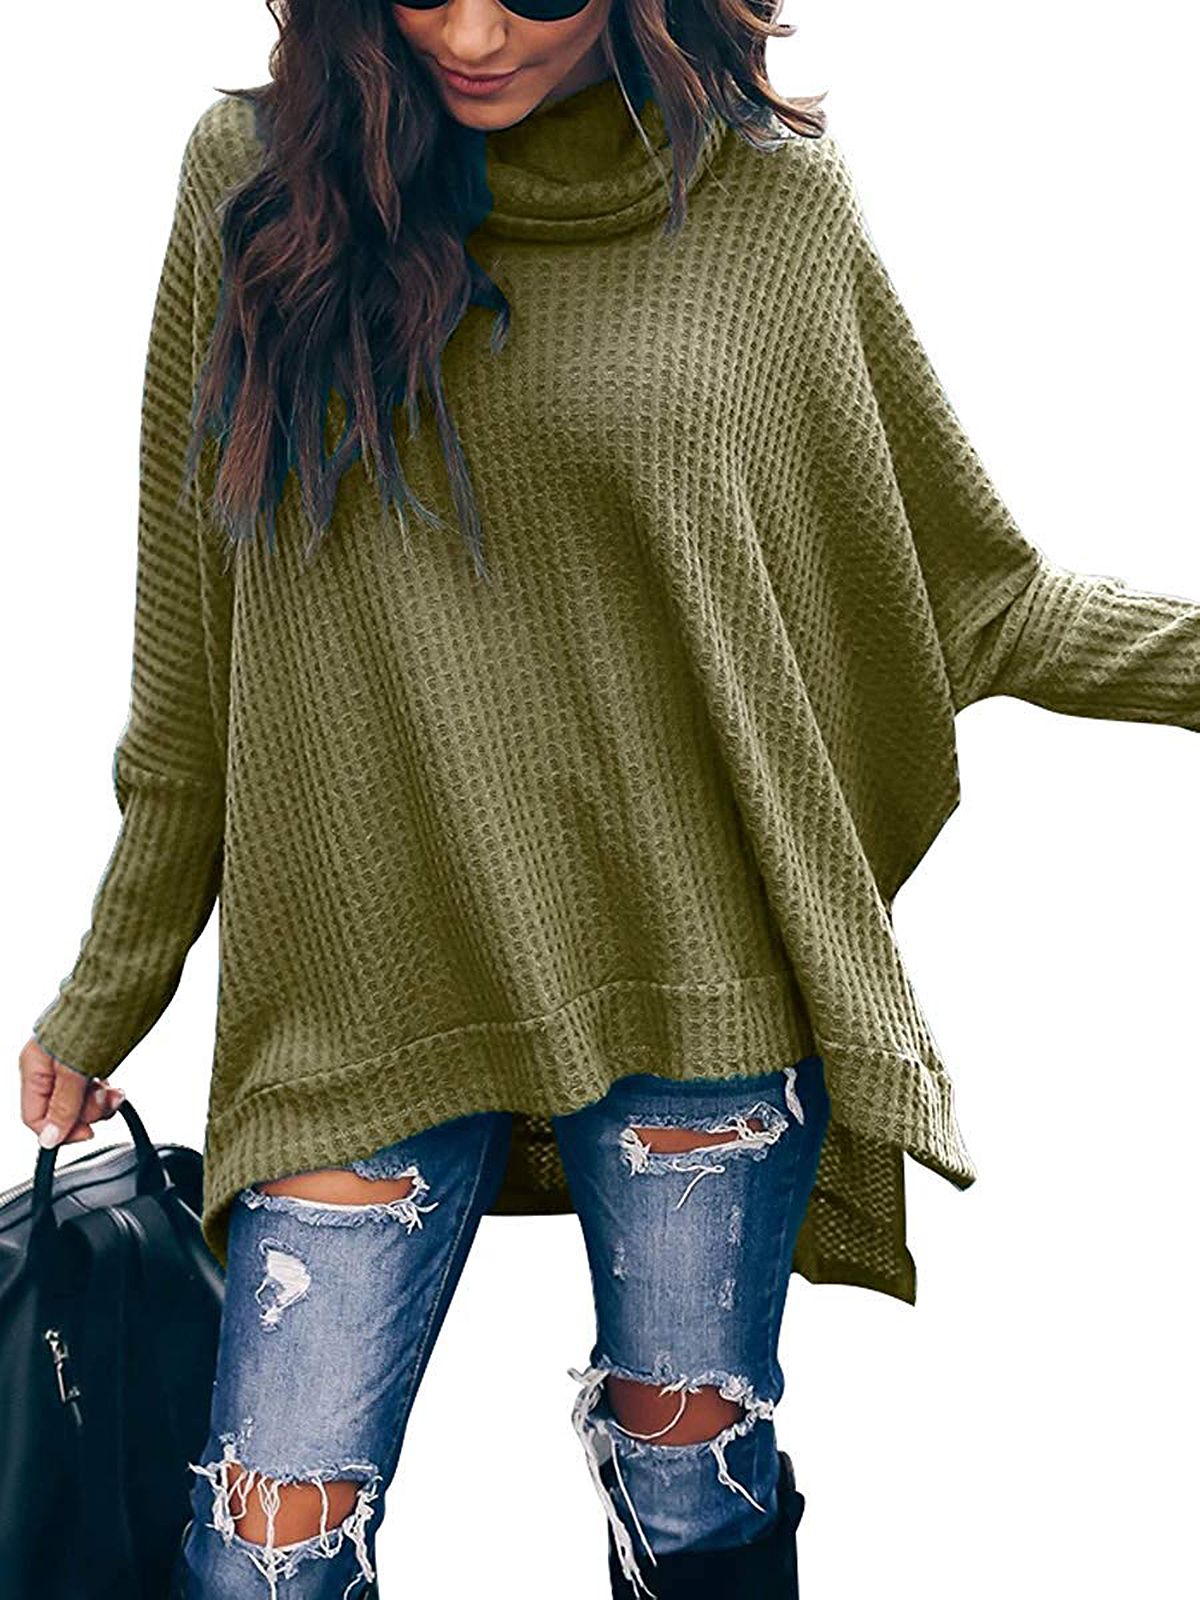 Caracilia Turtle Cowl NeckWaffle Knit Pullover Sweater